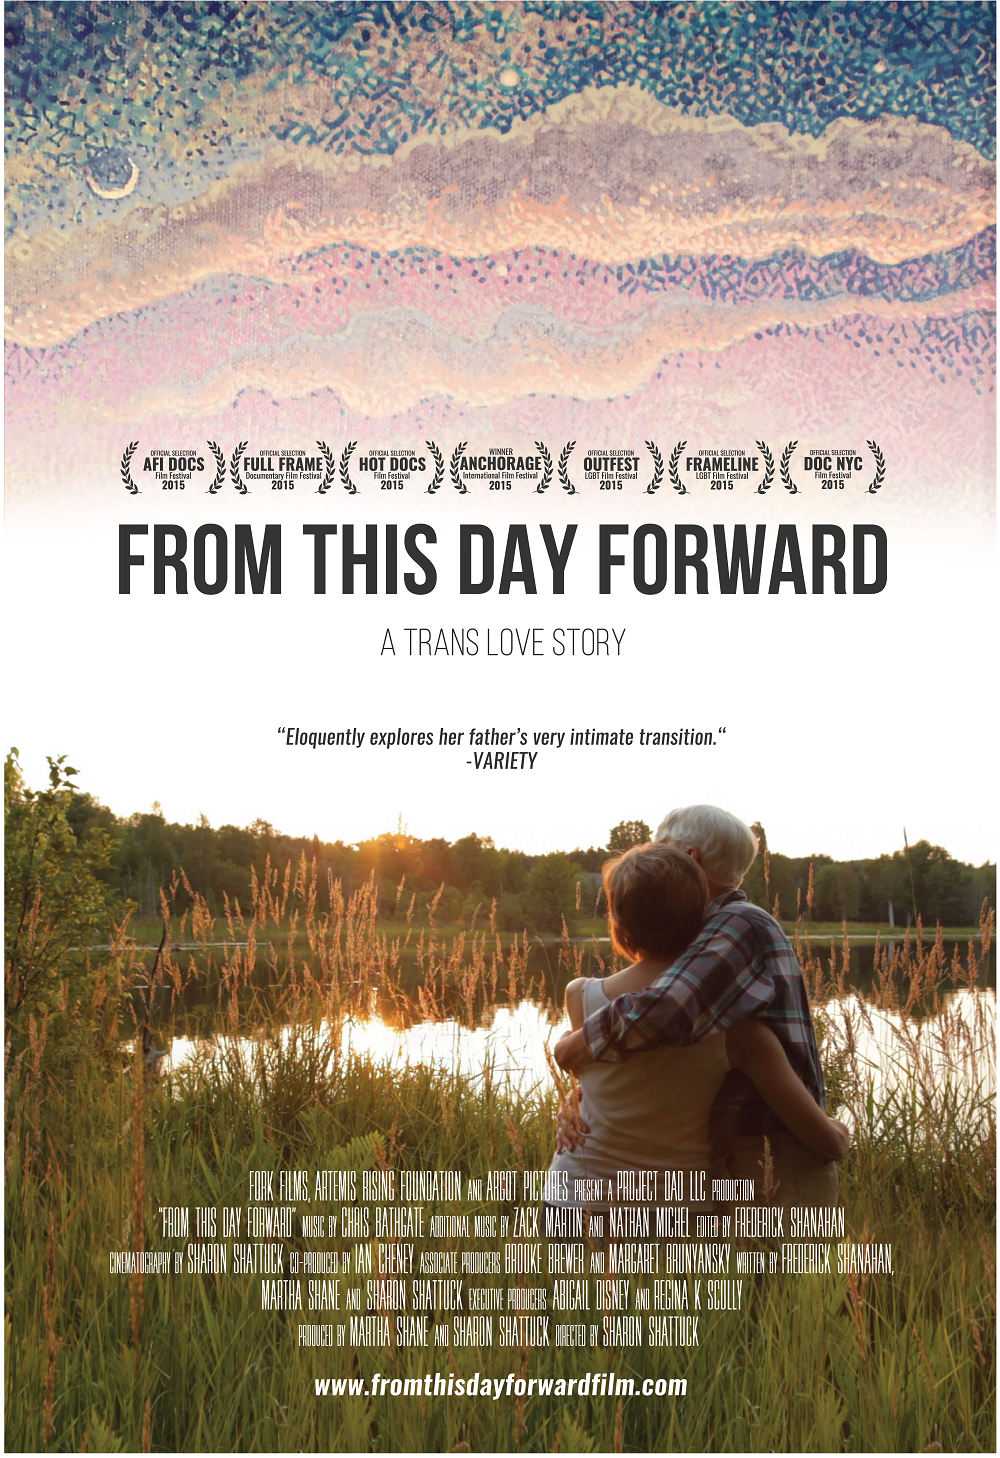 from this day forward poster art 2016